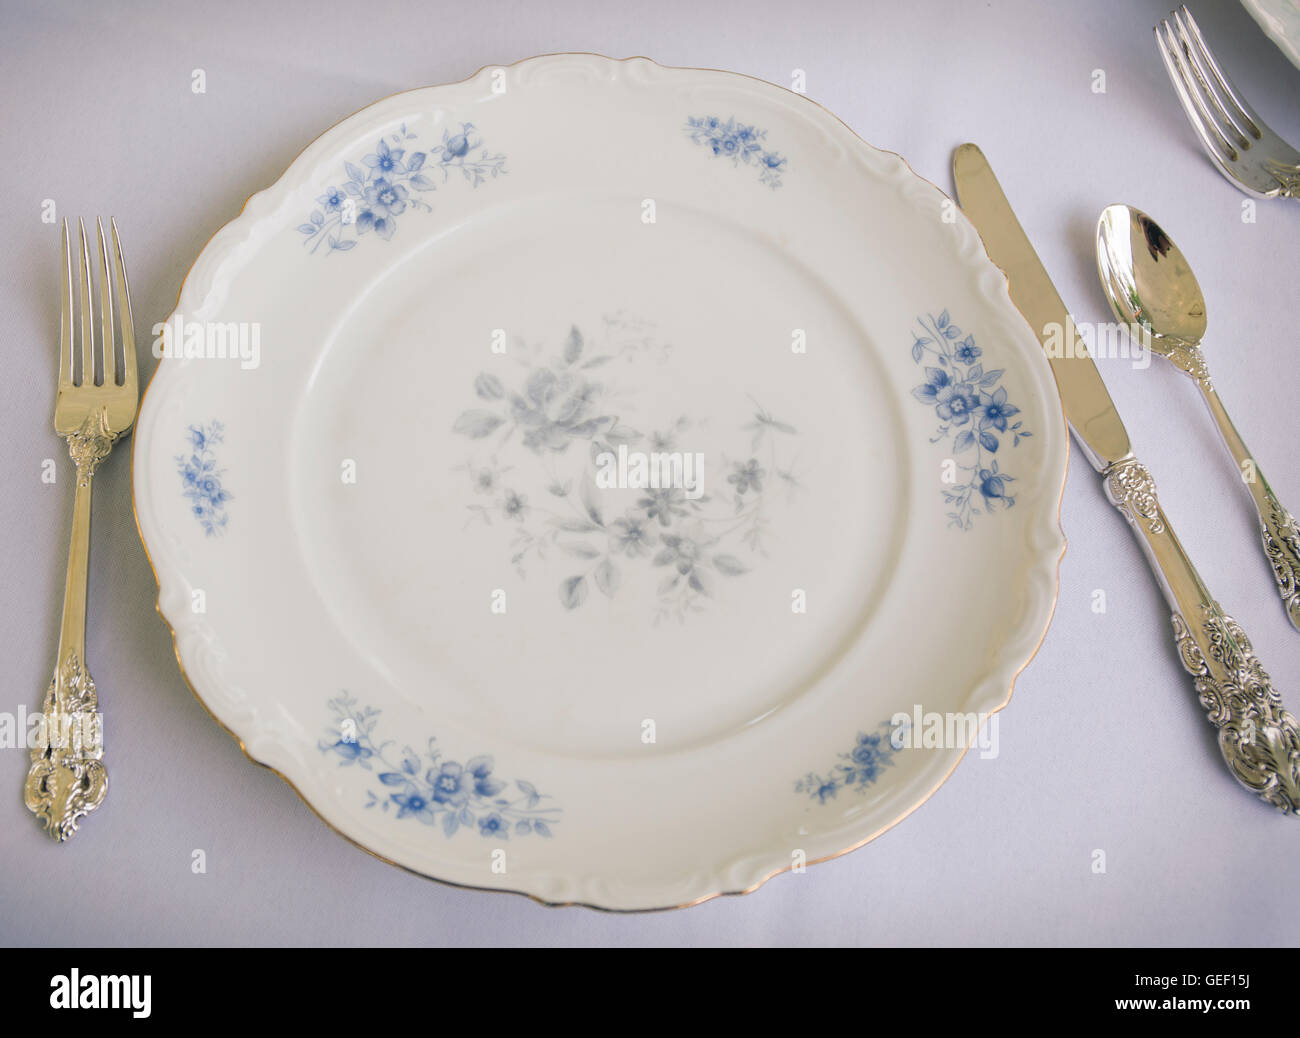 Table setting with fine china and silverware - Stock Image